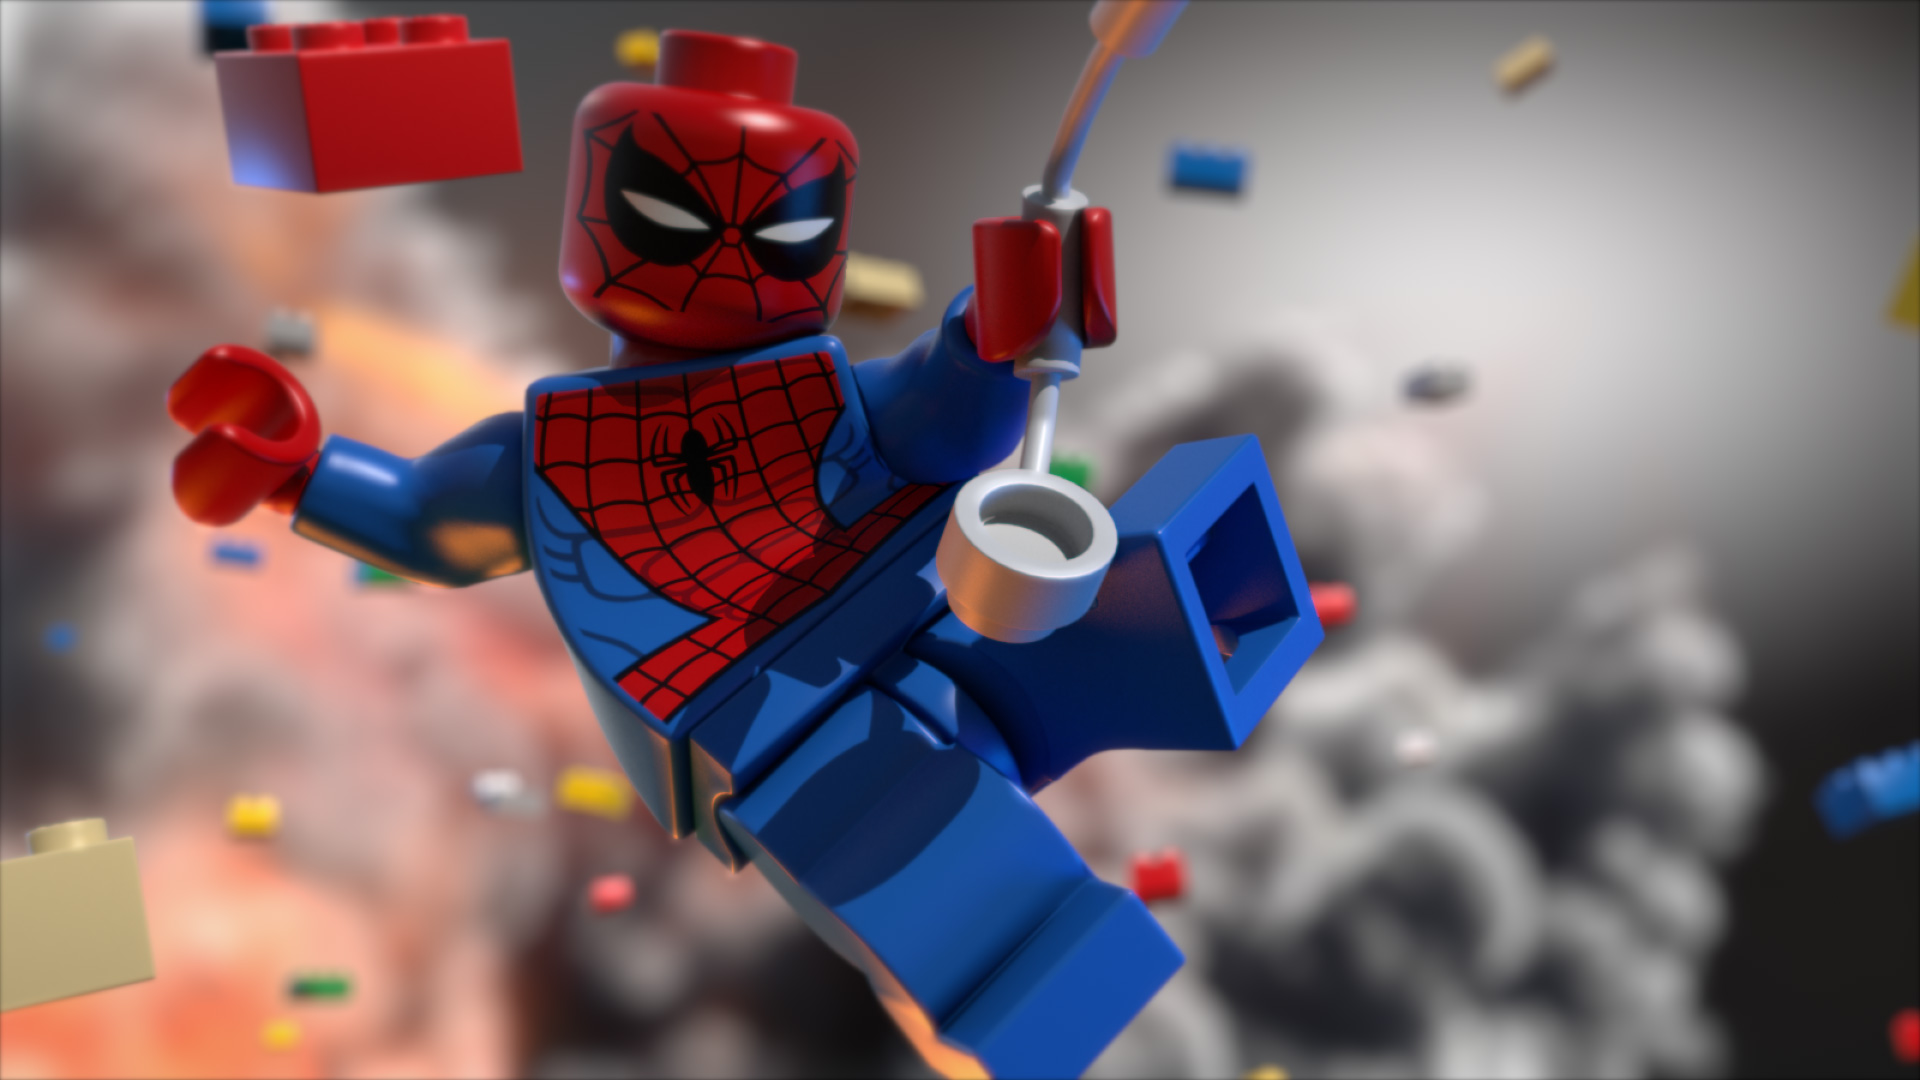 25 excellent hd lego wallpapers